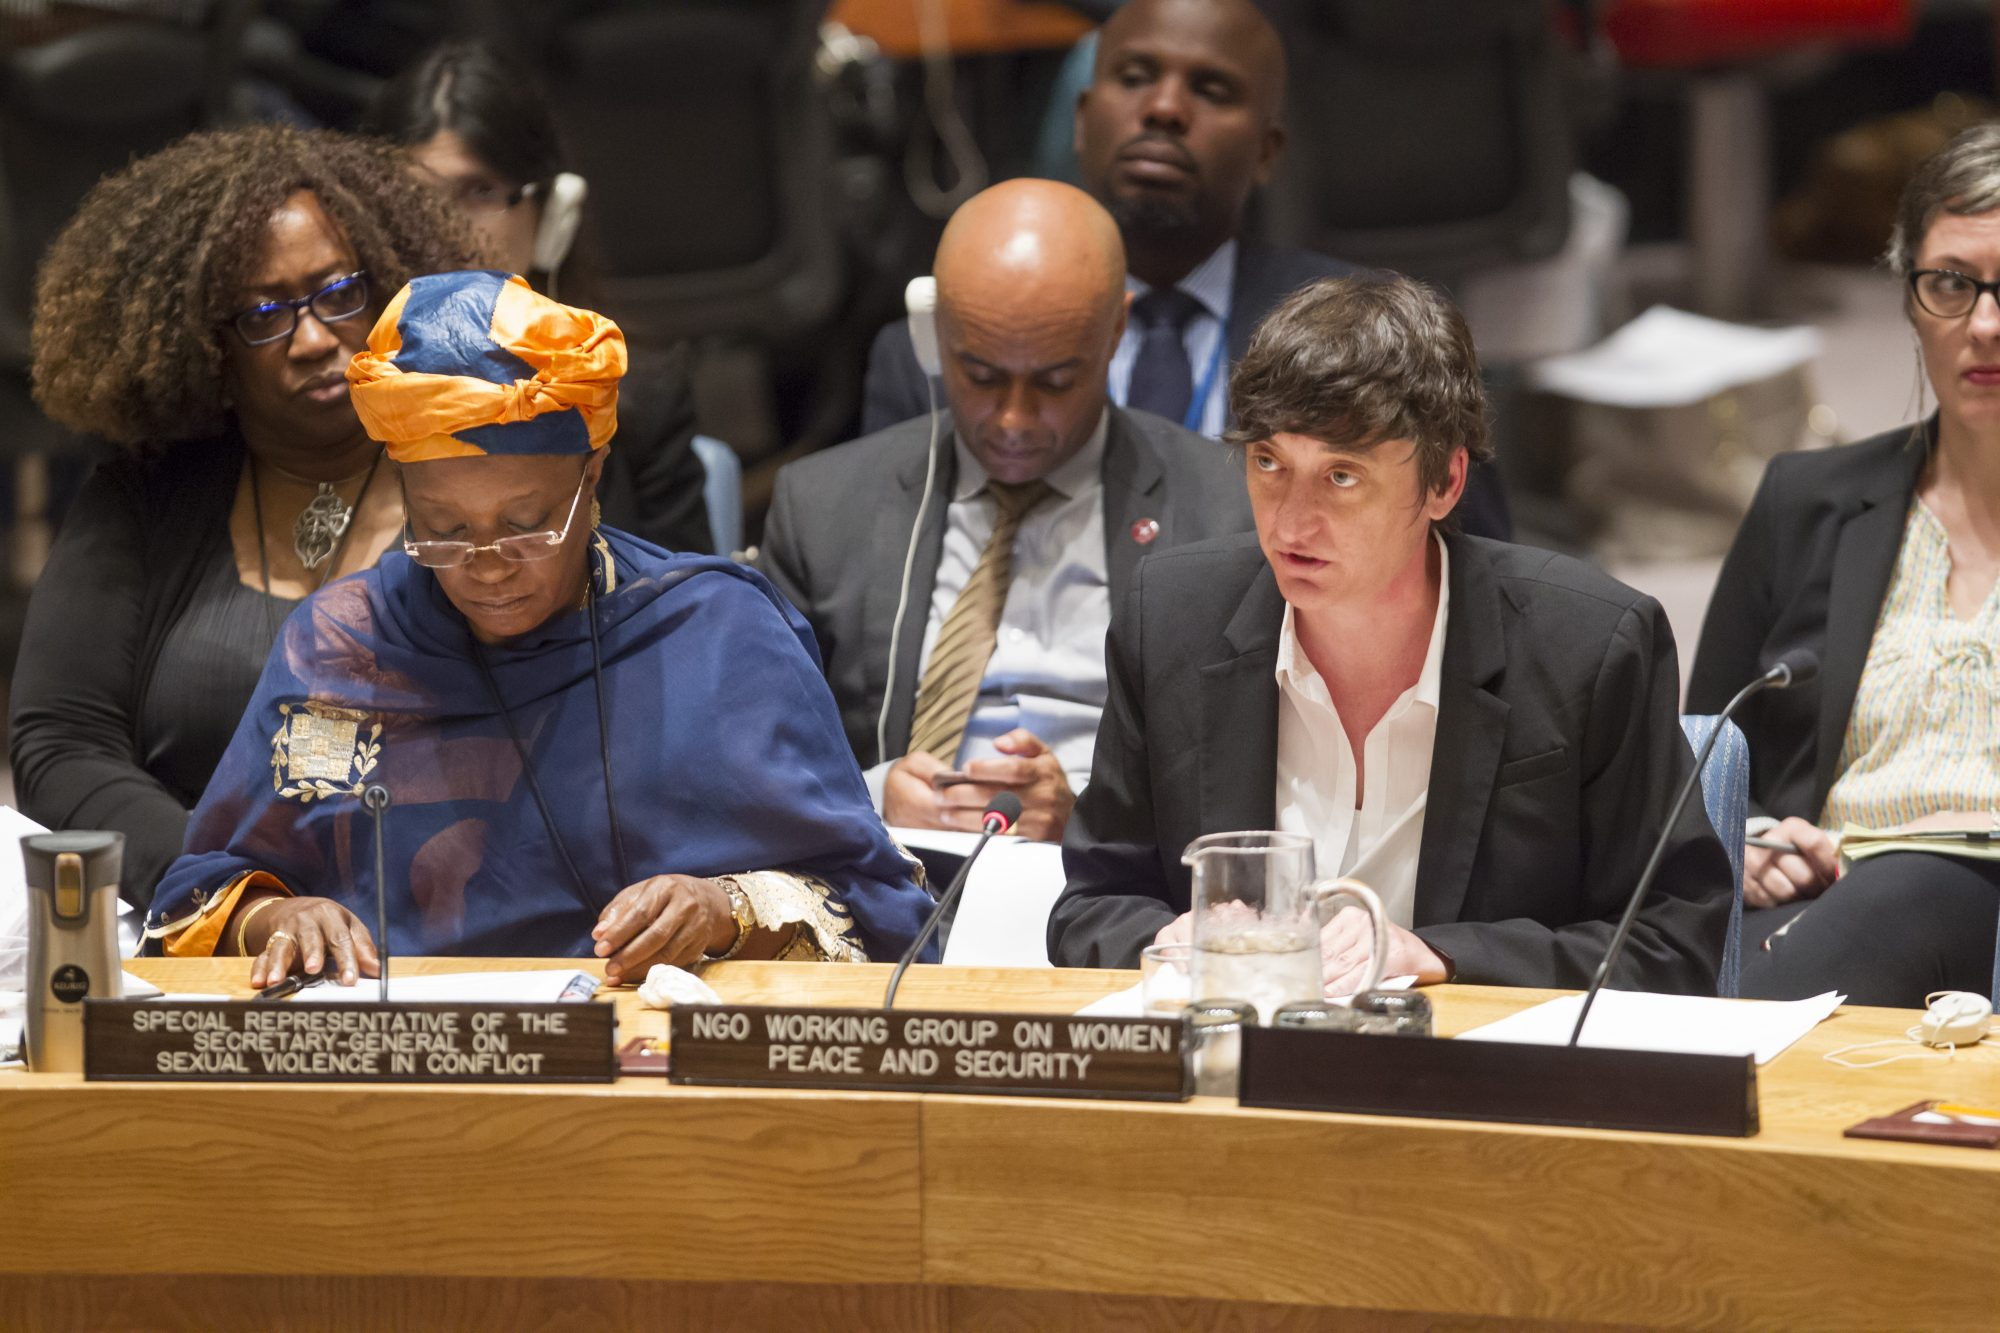 Statement by Ms. Lisa Davis at the UN Security Council Open Debate on Sexual Violence in Conflict